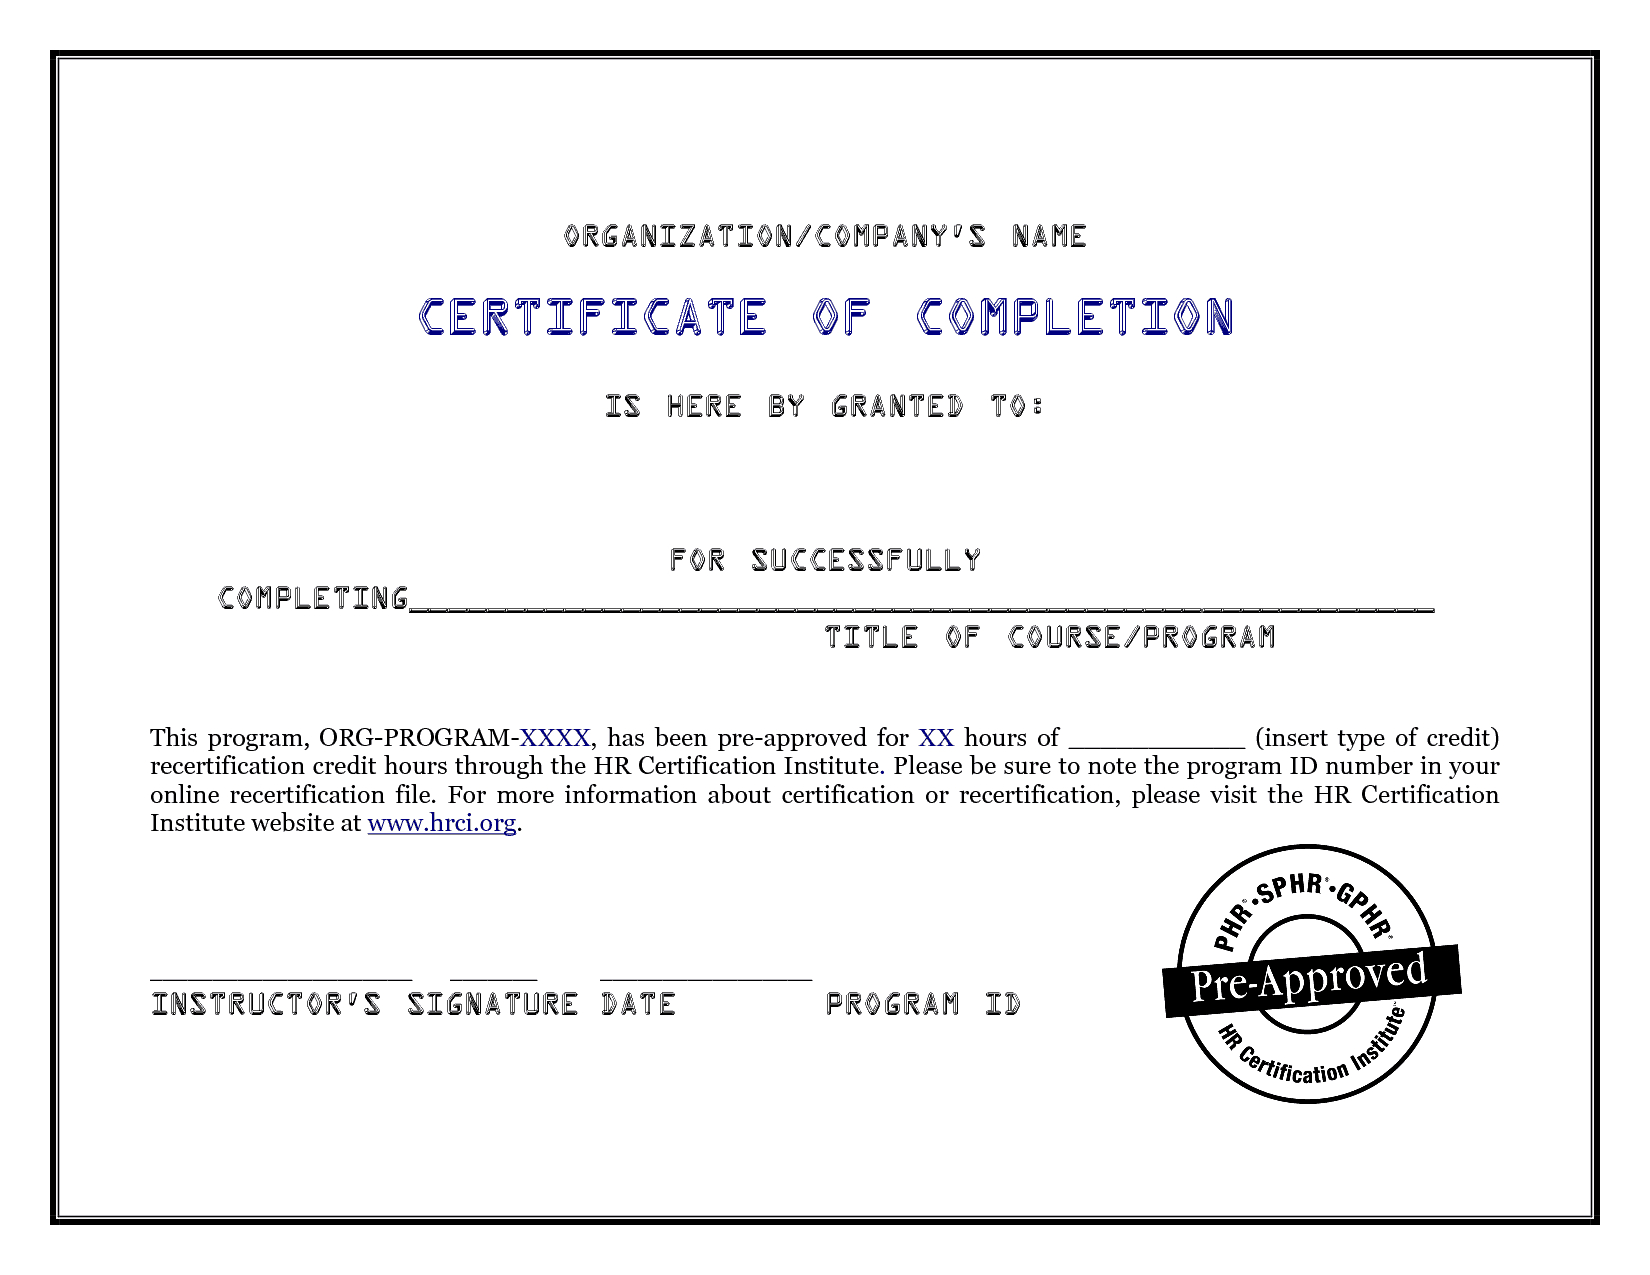 Certificate Of Completion Template 541  Word Templates with regard to Awesome Construction Certificate Of Completion Template